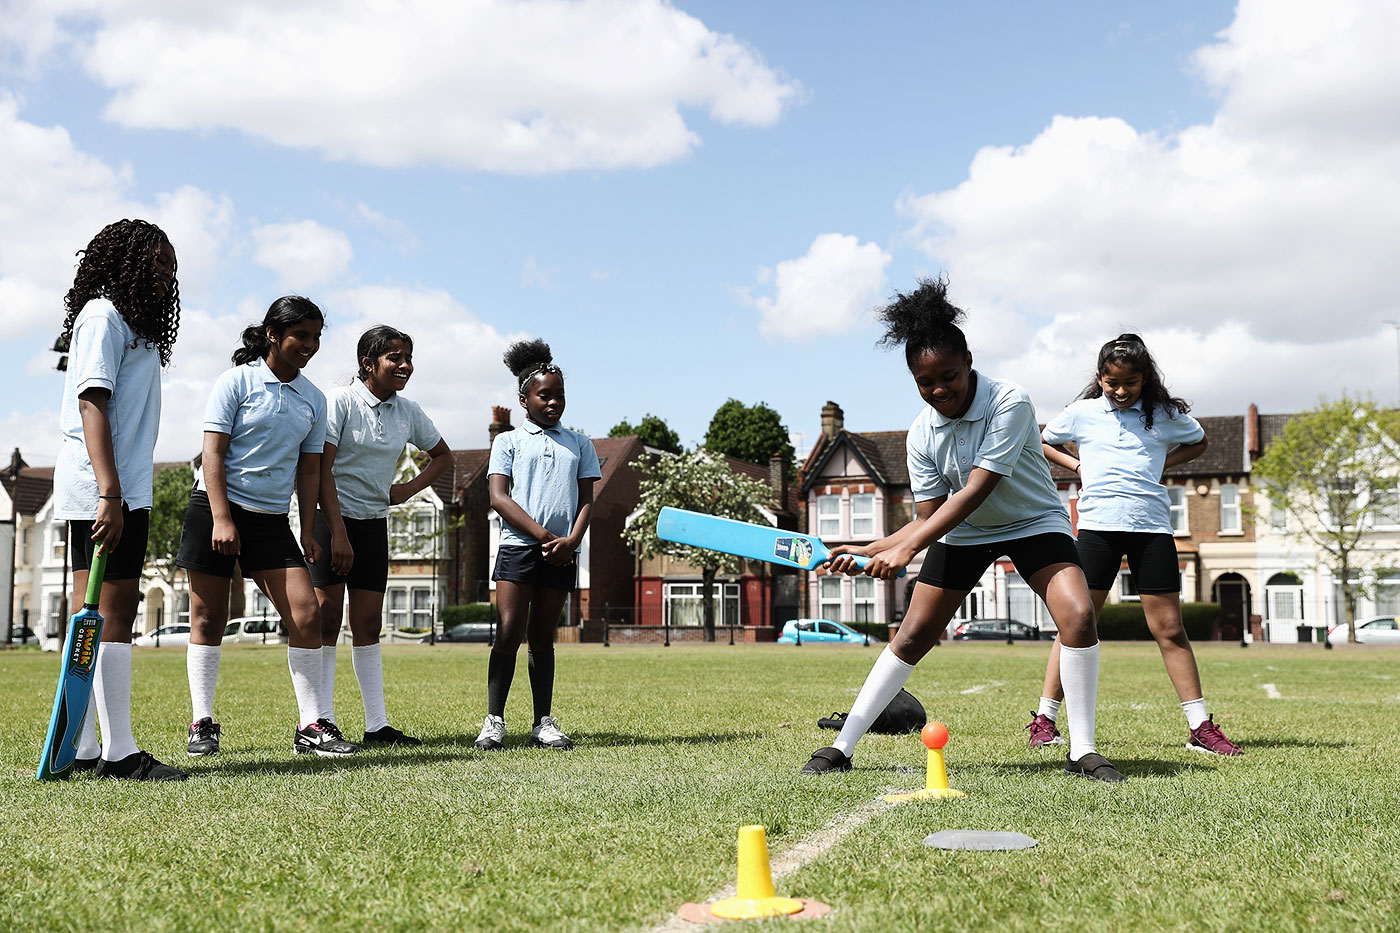 Girls participate in games of cricket during the launch of the South Asian Communities Action Plan in Leyton, London